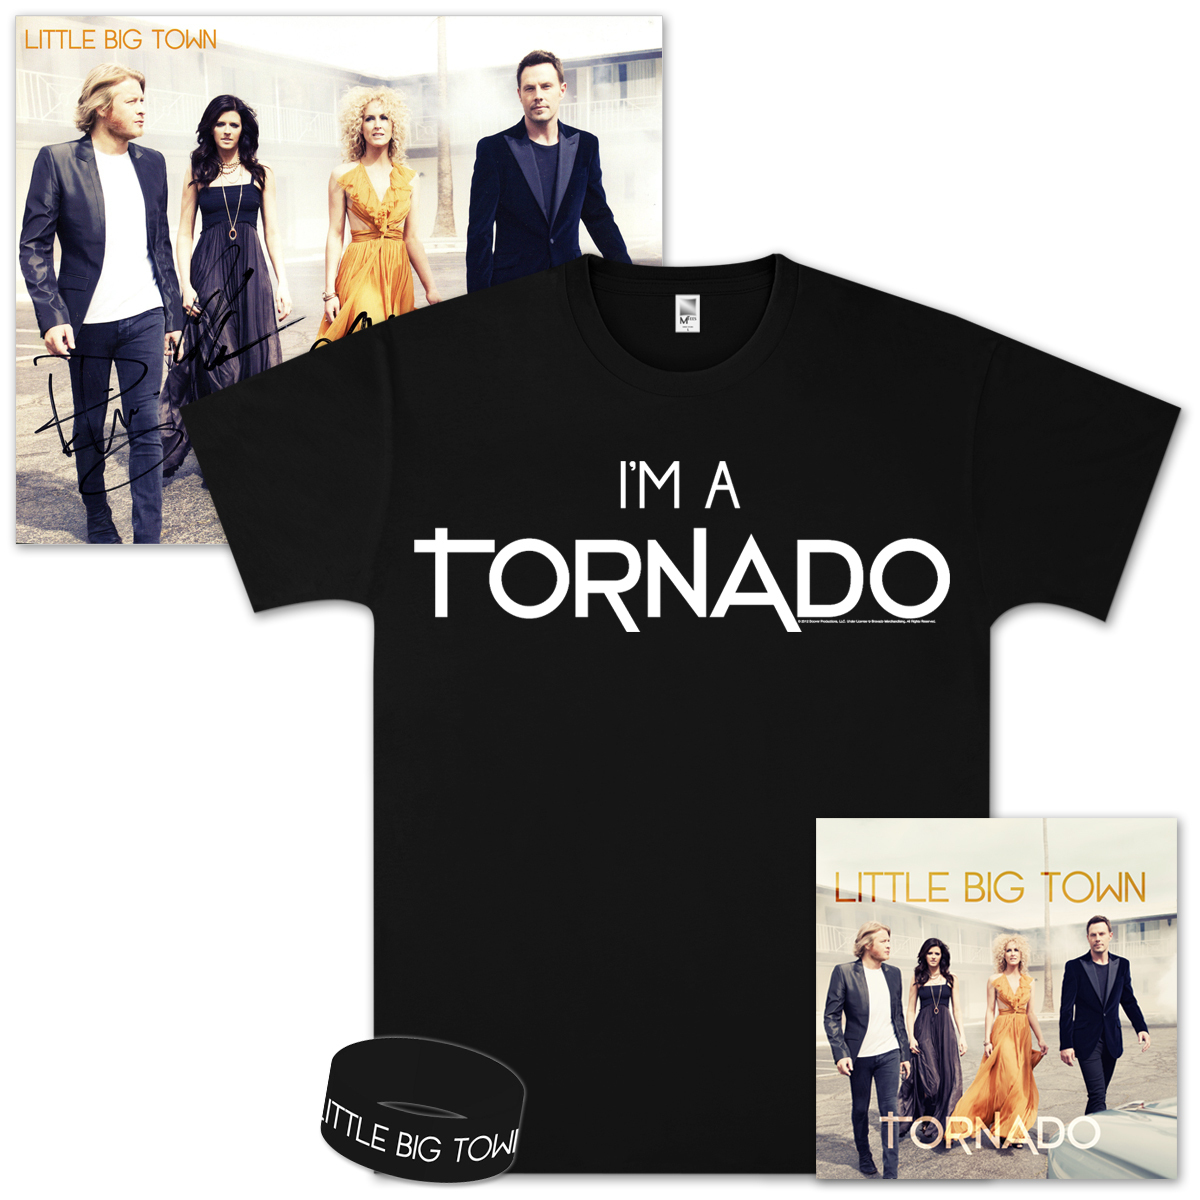 Little Big Town Tornado Gold Bundle